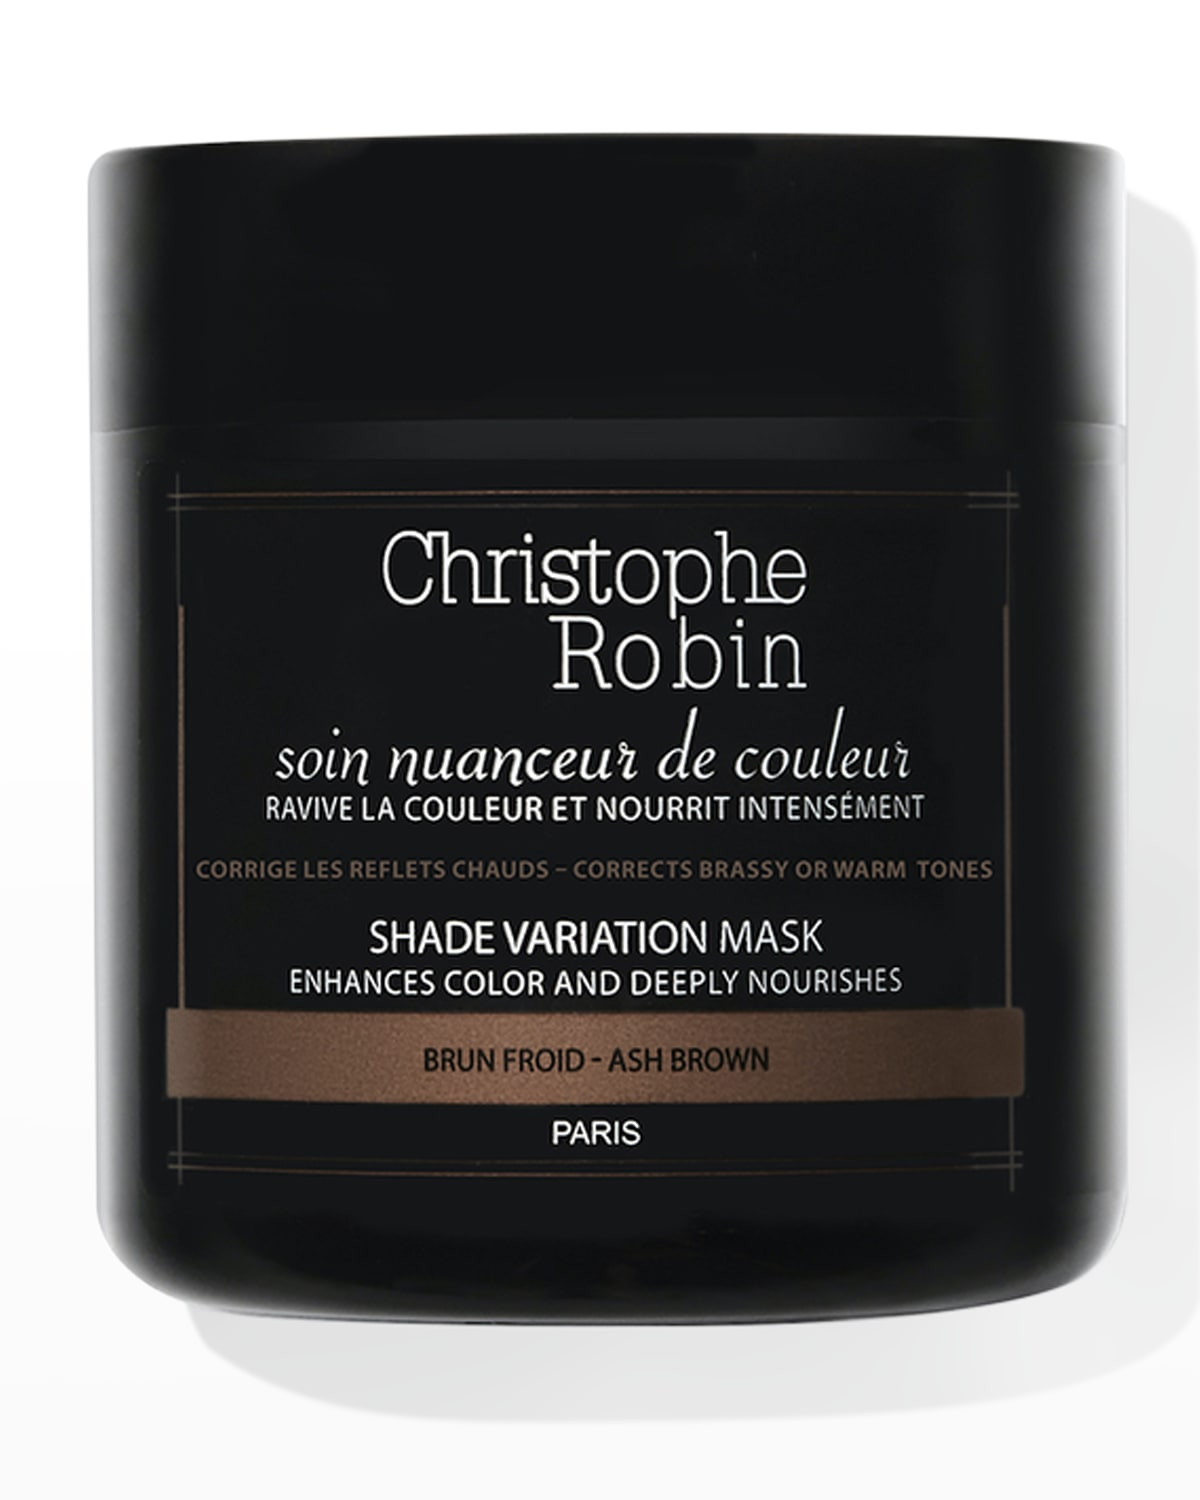 8.4 oz. Shade Variation Care Nutritive Mask with Temporary Coloring